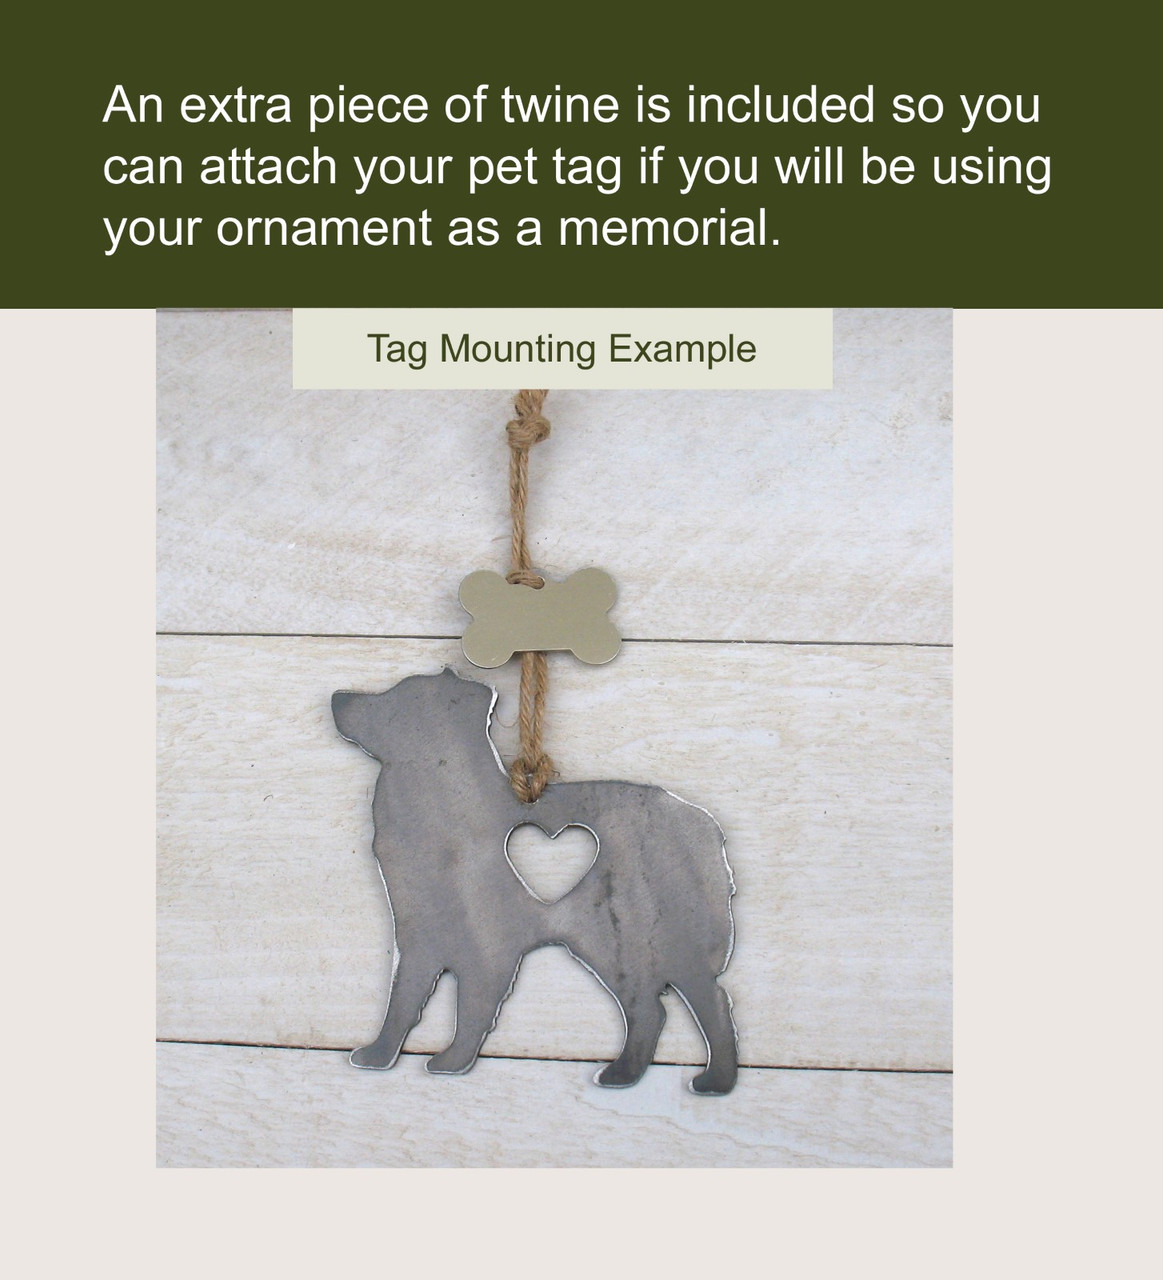 Greyhound Dog Ornament 2 Pet Memorial W/ Angel Wings - Pet Loss Dog Sympathy Remembrance Gift - Metal Dog Christmas Ornament